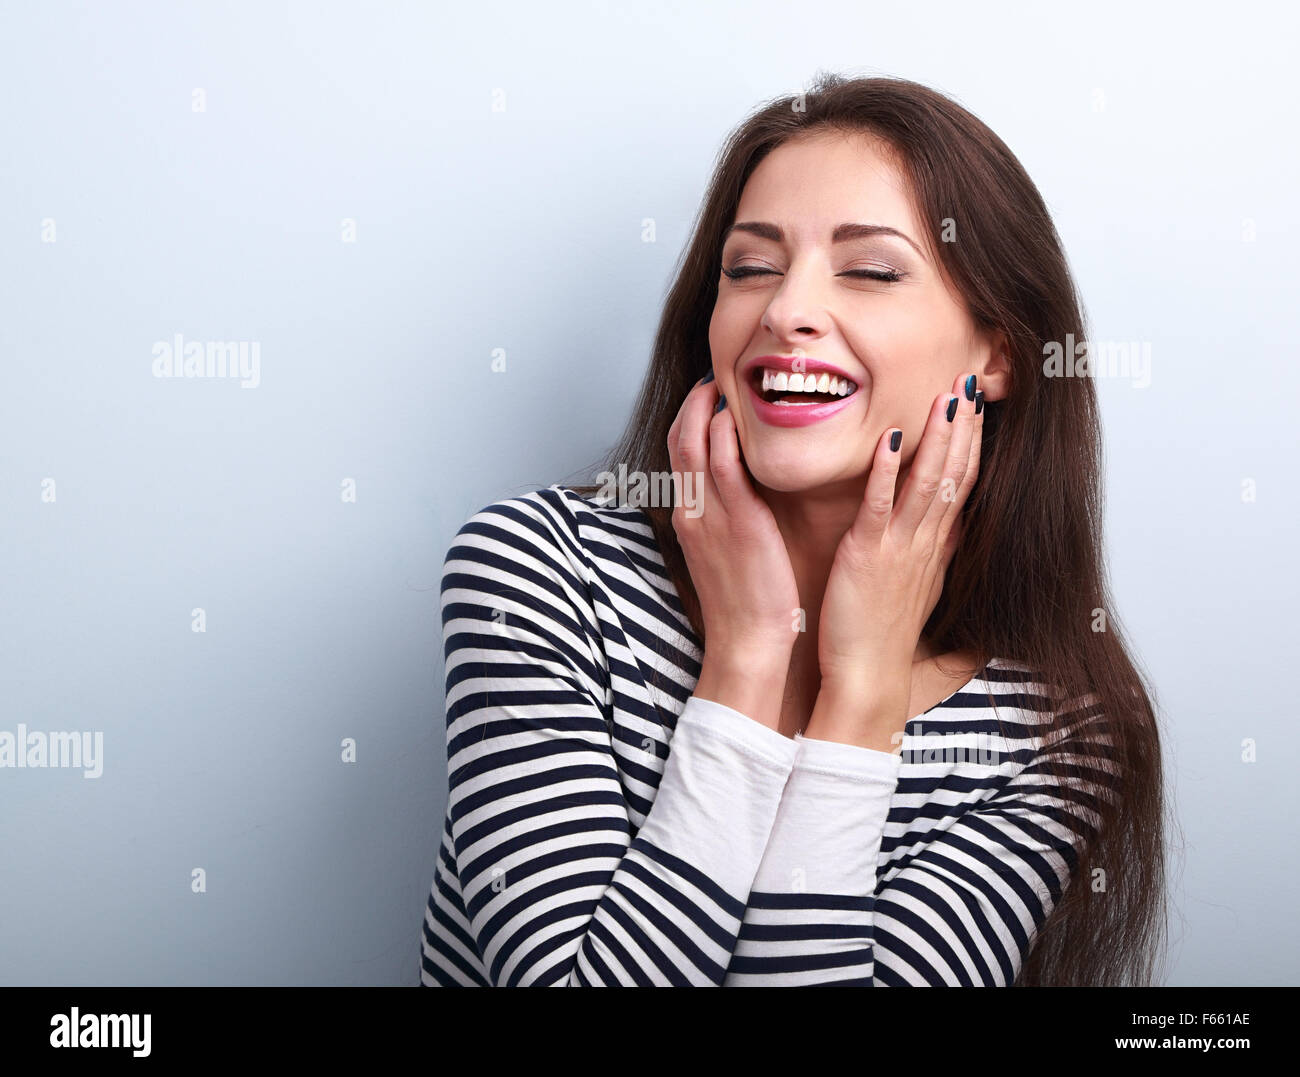 Happy loudly laughing woman holding hands the face on blue background - Stock Image